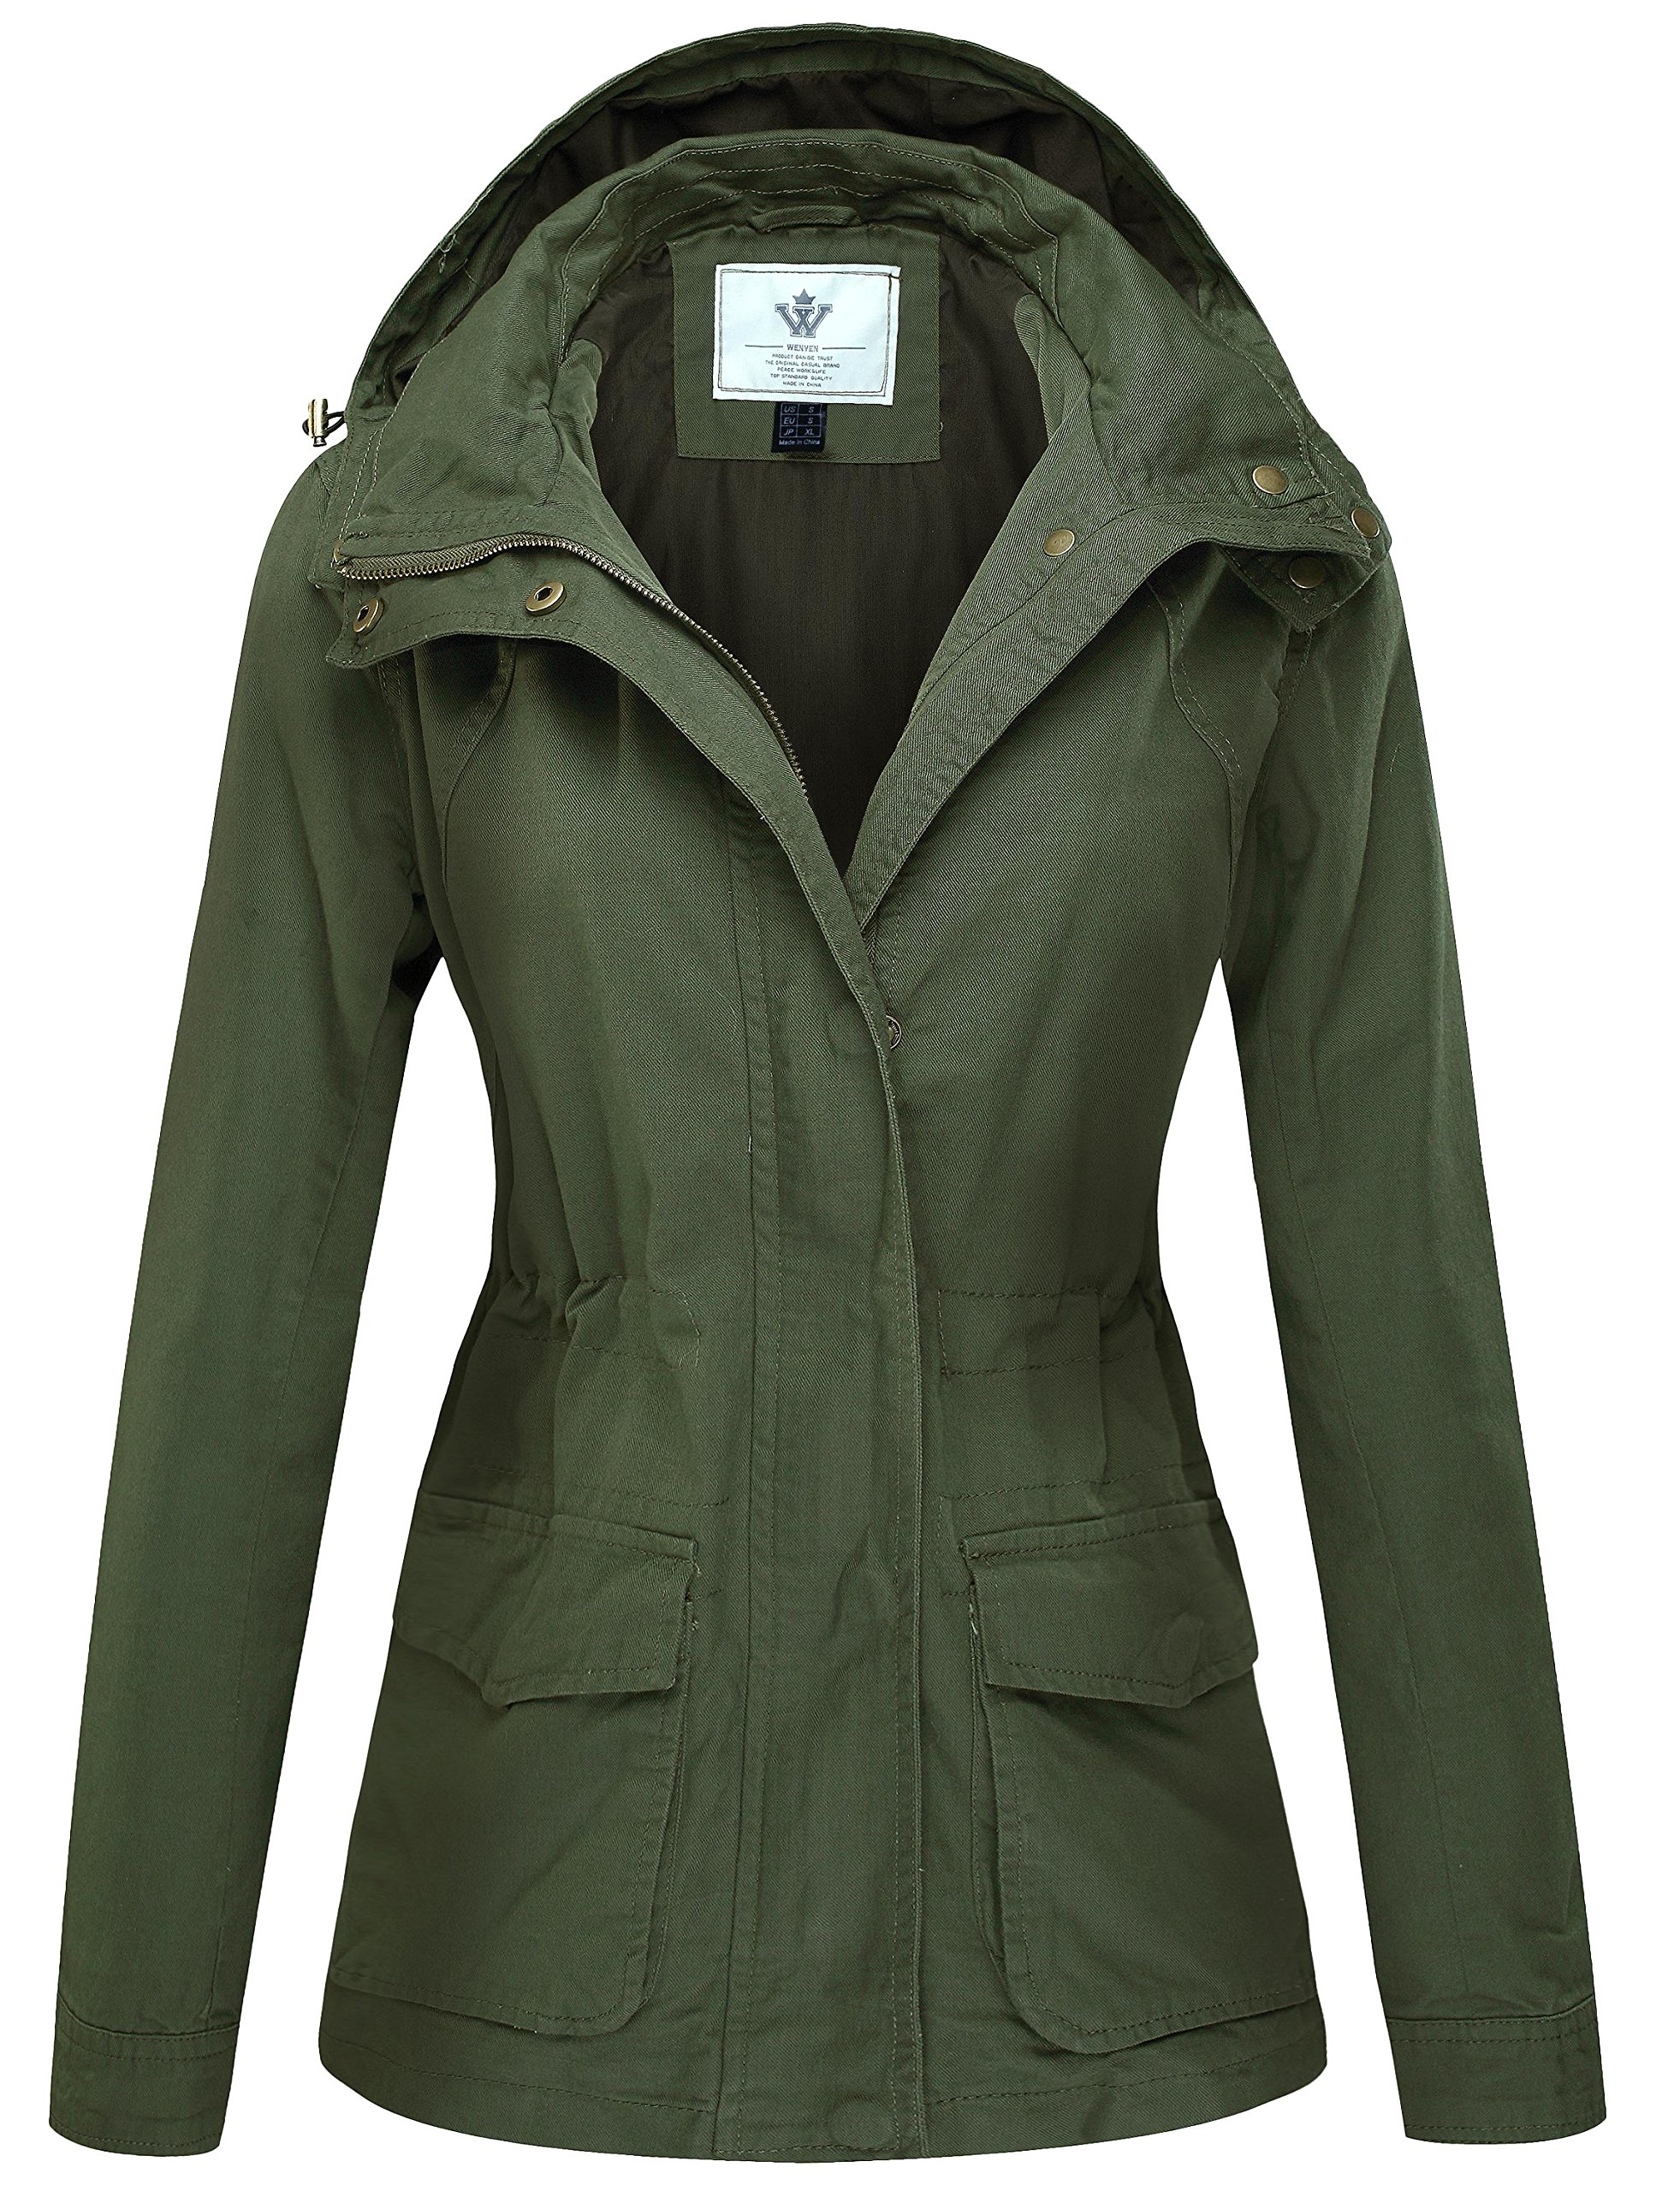 WenVen Women's Versatile Militray Anorak Parka Hoodie Jackets with Drawstring(Army Green,Small)